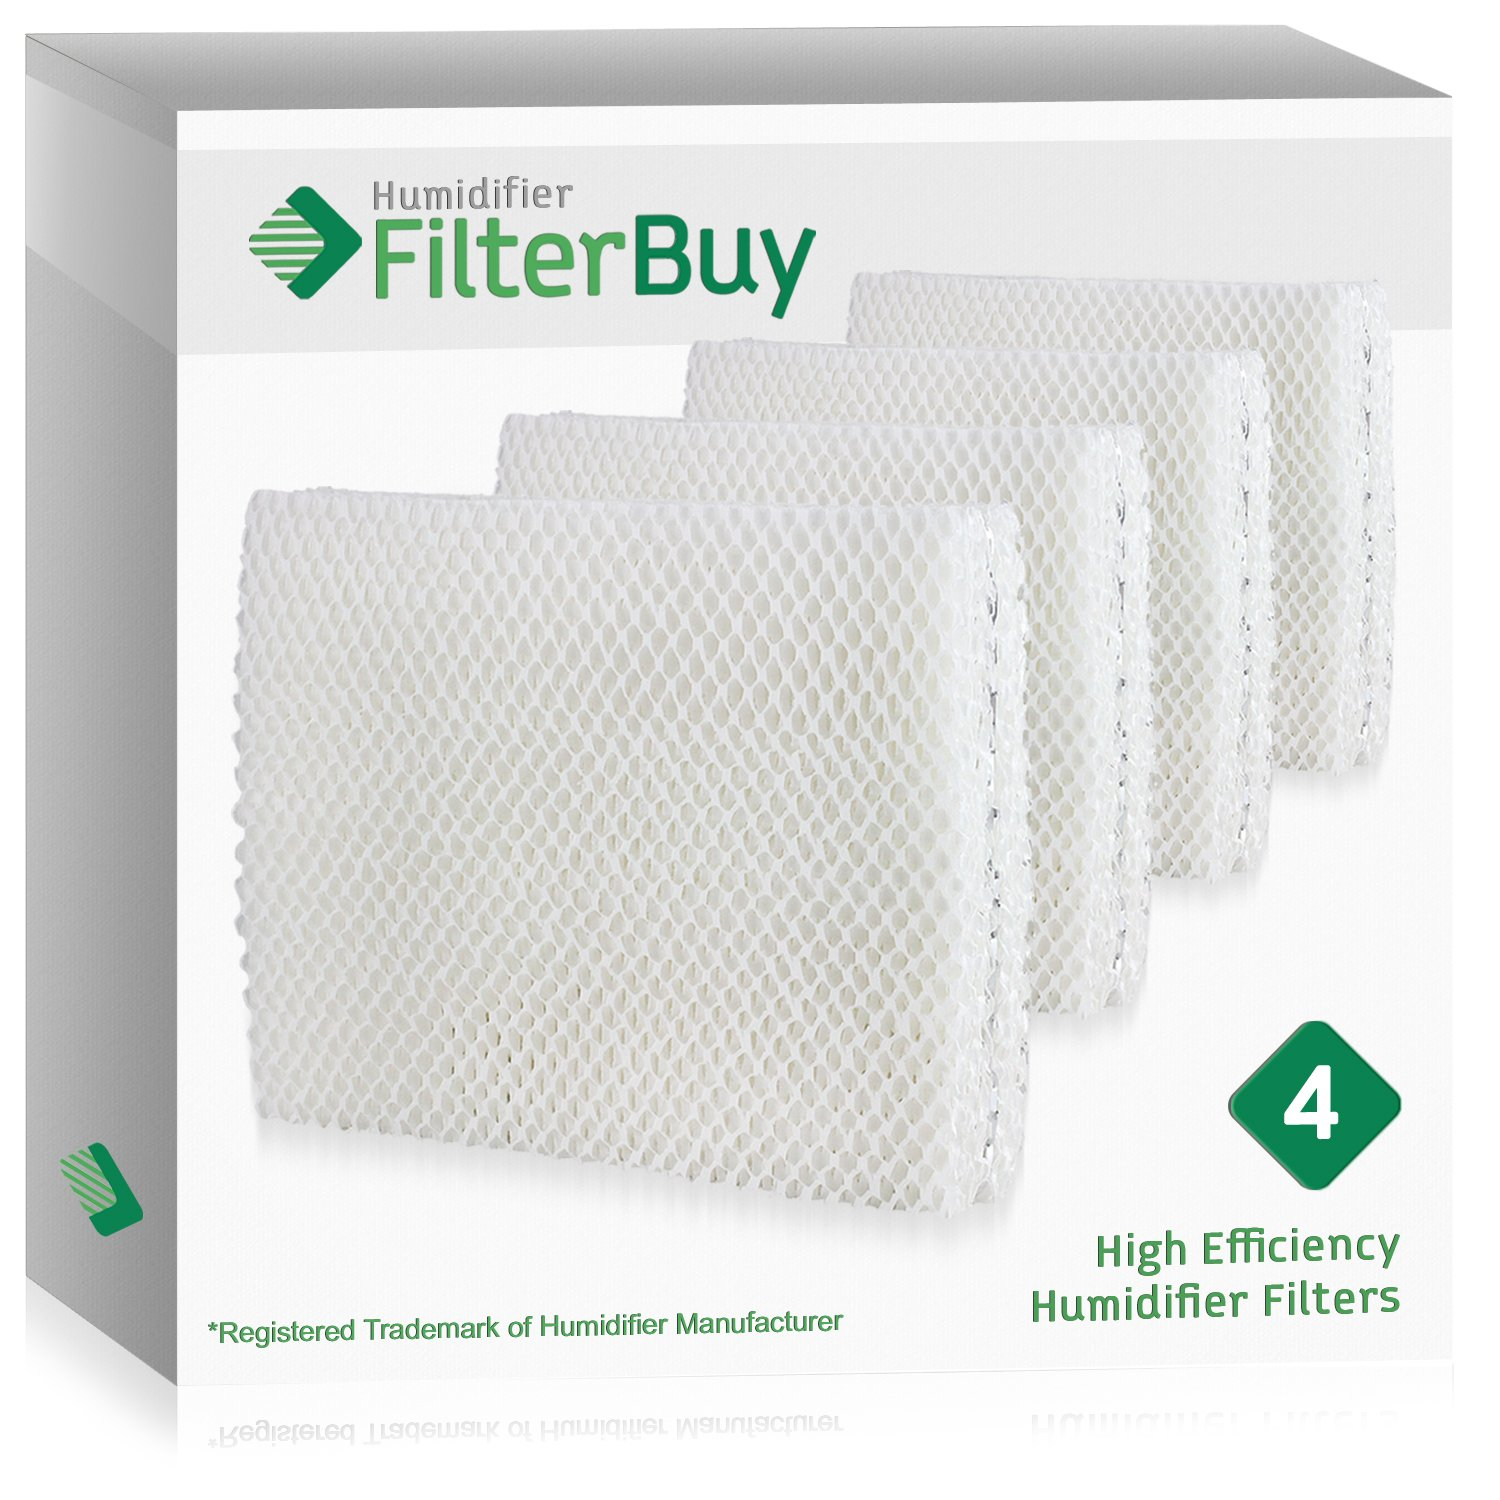 FilterBuy Vornado MD1-0001, MD1-0002, MD1-1002 Compatible Humidifier Wick Filters (Pack of 4). Designed by FilterBuy to fit all Vornado Evaporative Humidifiers.